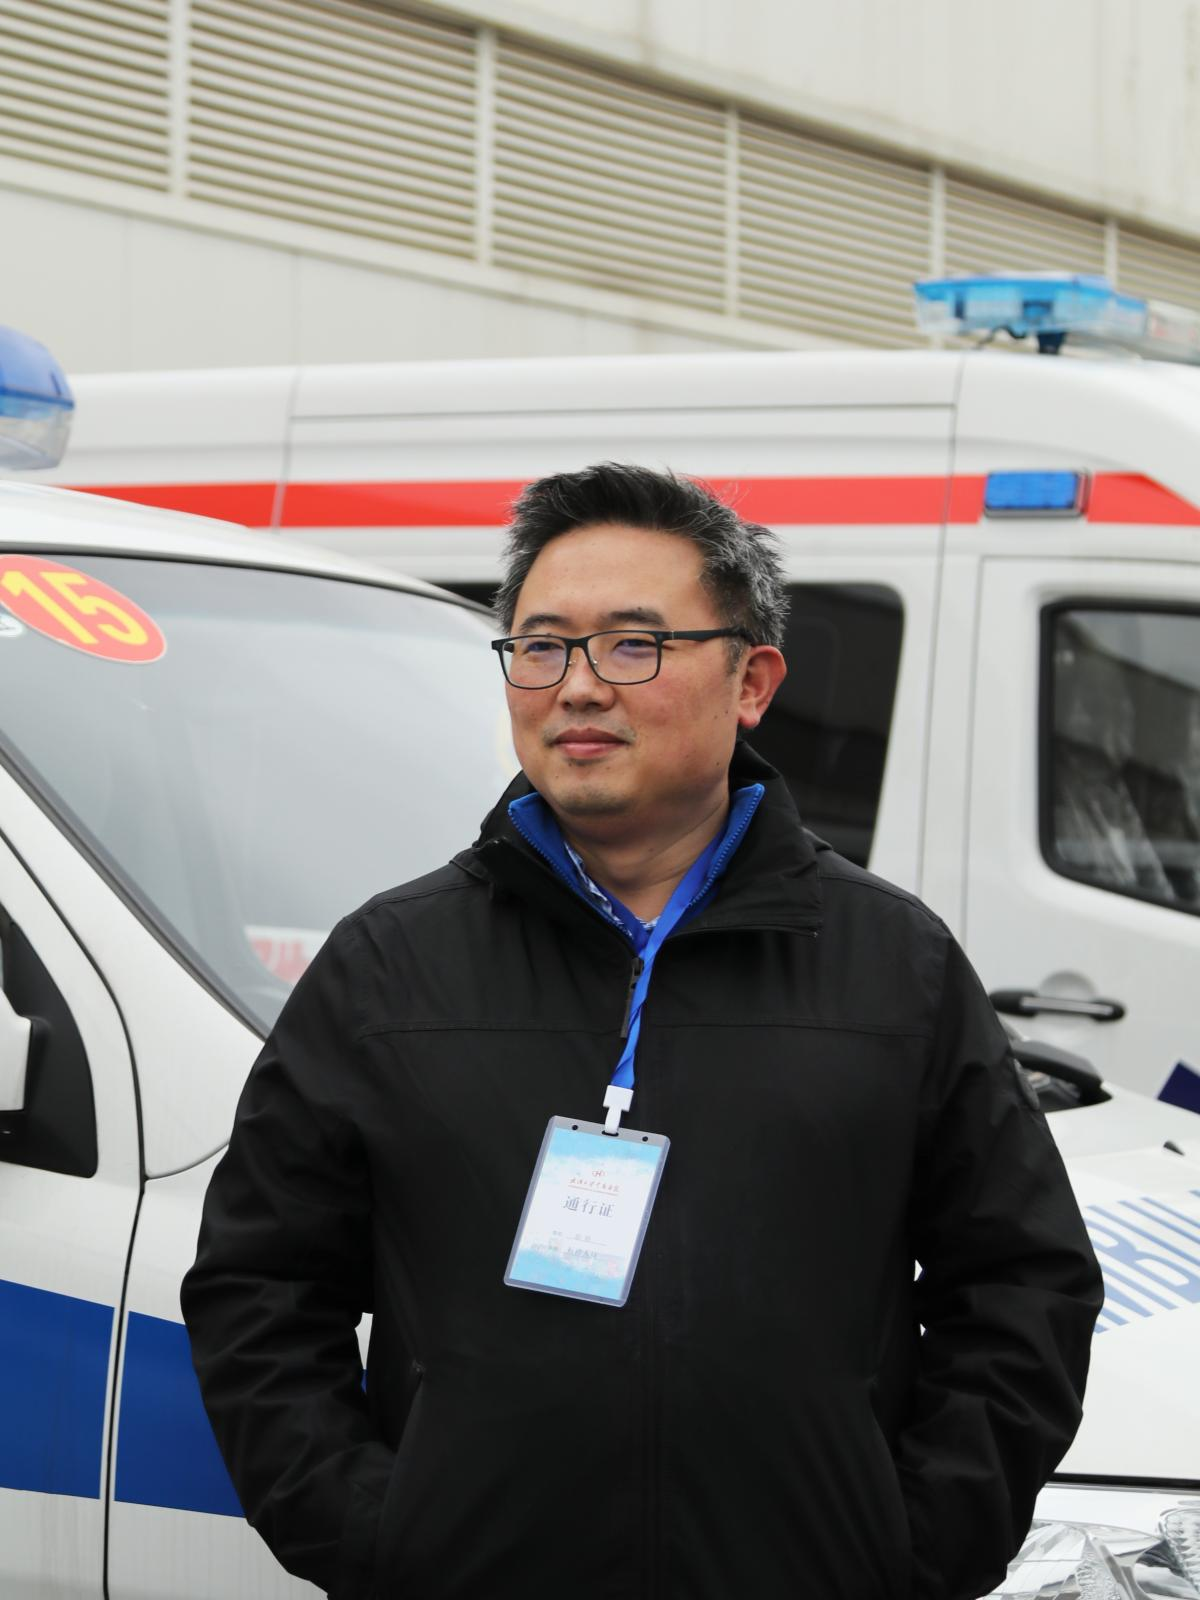 Zhao Yan, an emergency care doctor, at Leishenshan Hospital in Wuhan. Zhao says he is still puzzled at the virus's different symptoms among patients in China, Europe and the United States.